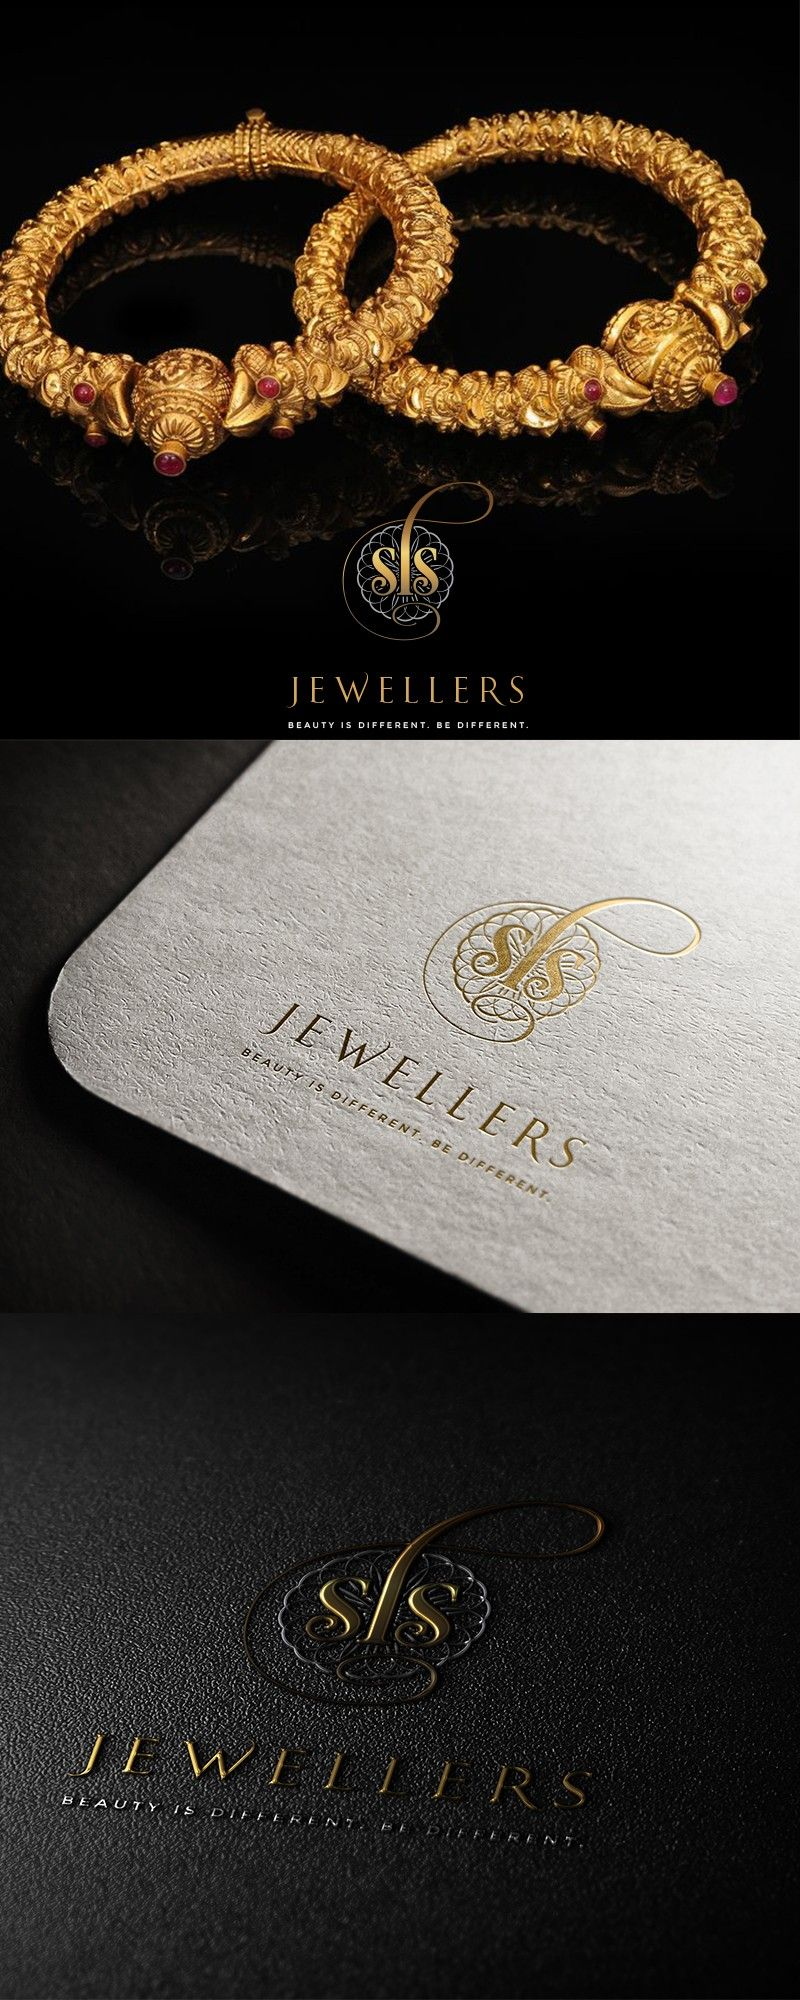 High End Luxury Diamond And Jewellery Store Logo Graphic